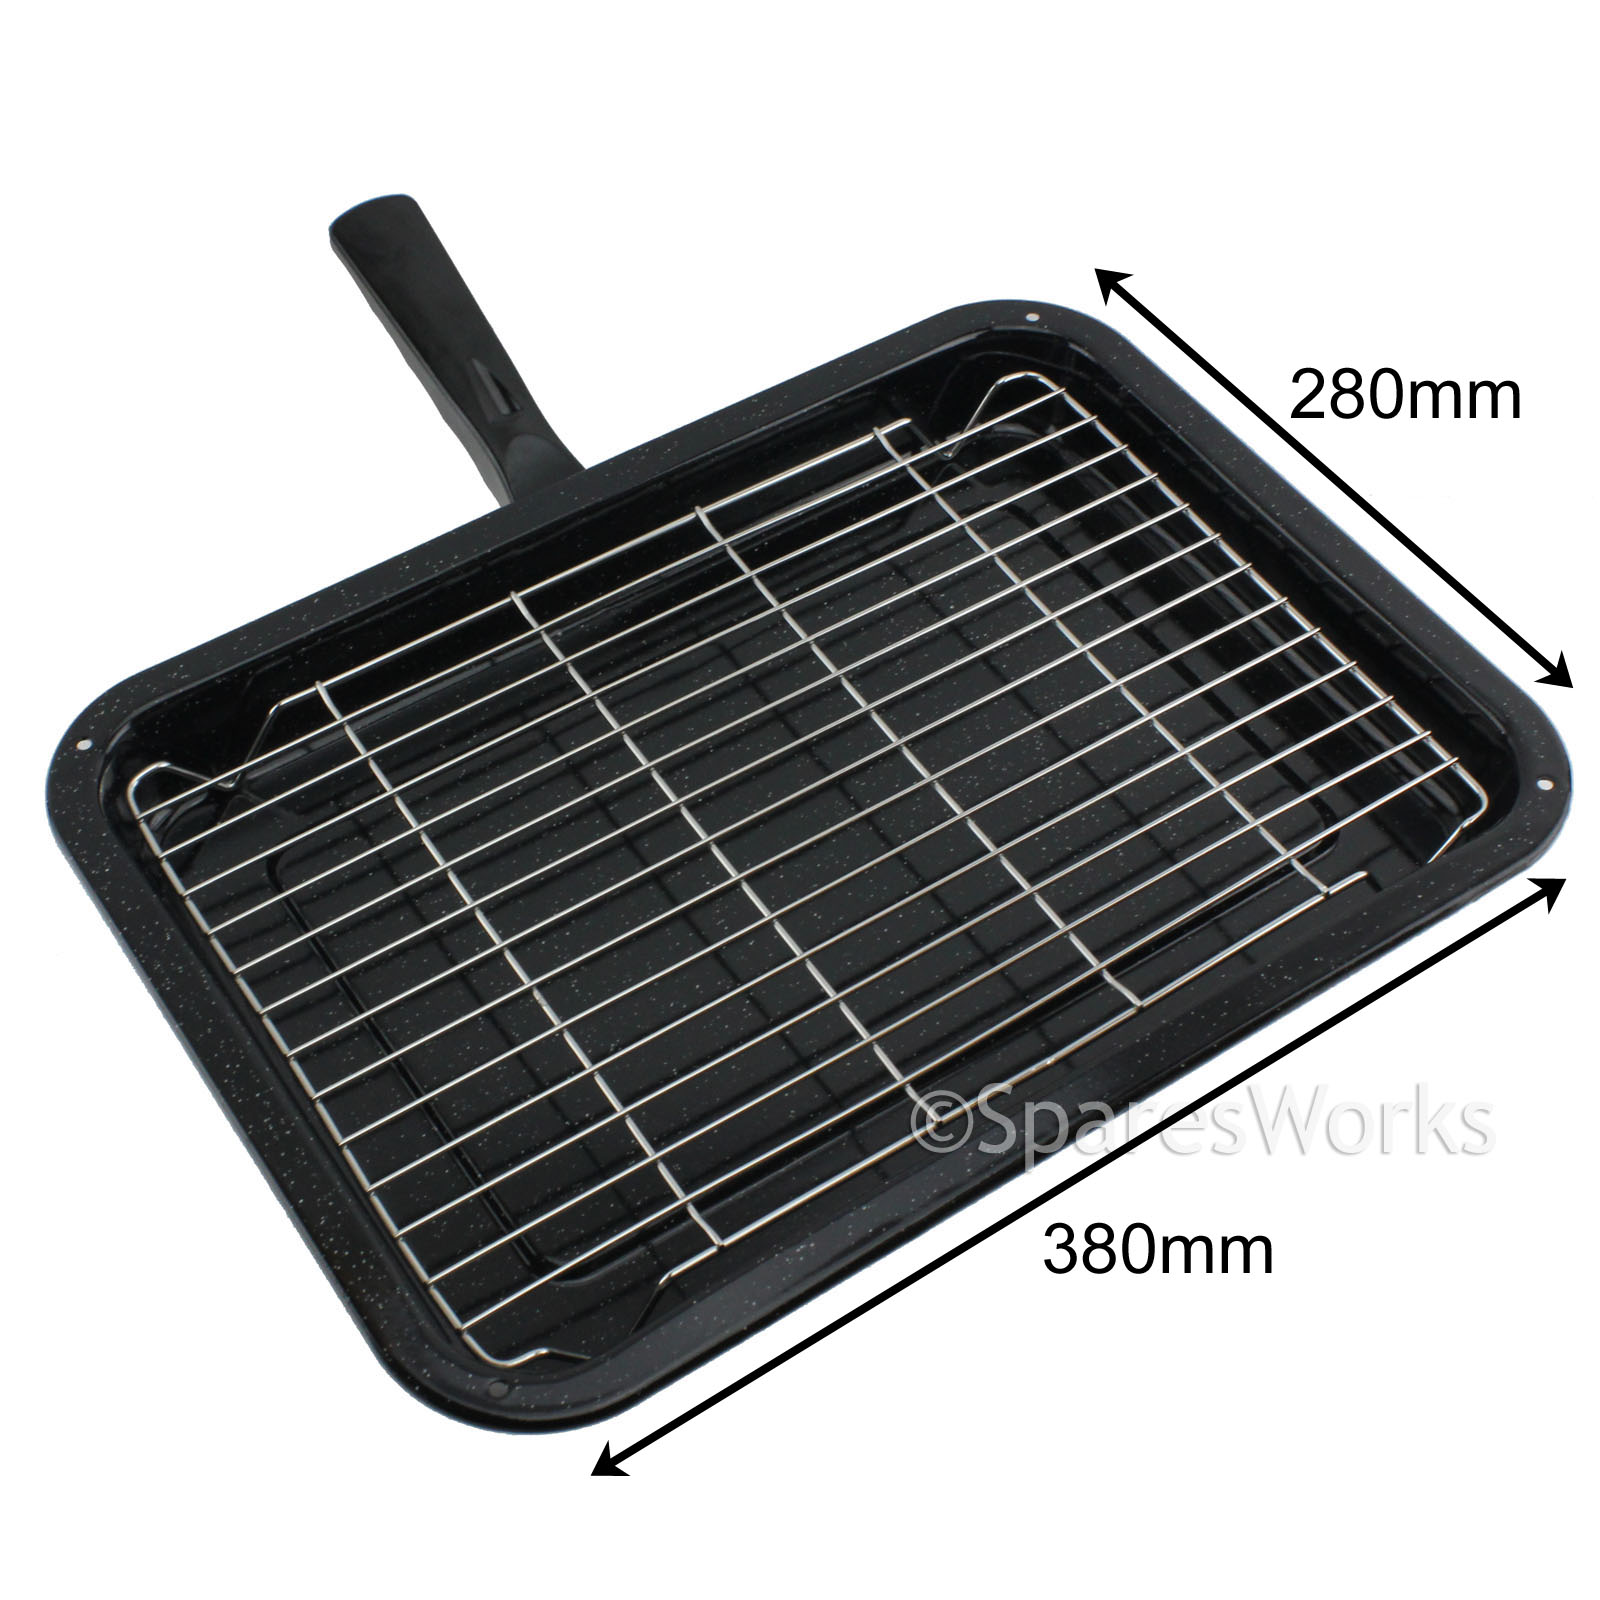 Universal Small Oven Cooker Grill Pan Tray With Handle